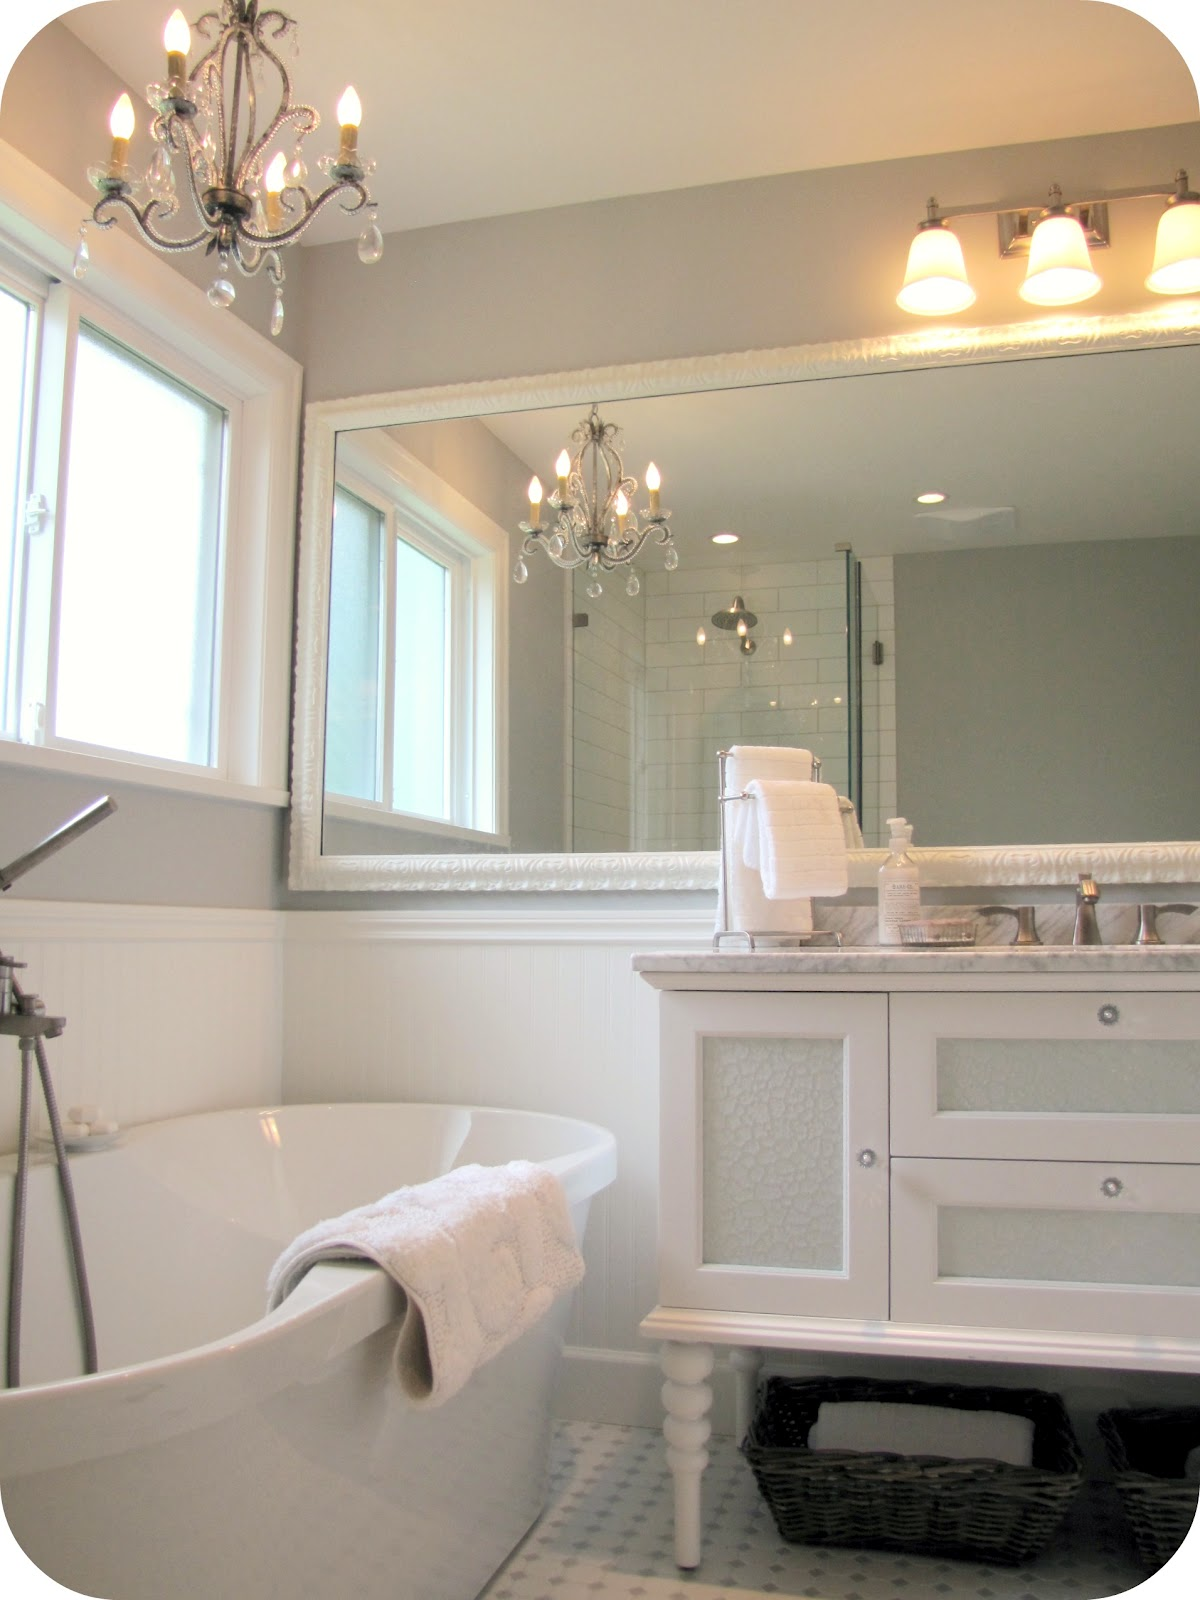 My house of giggles white and grey bathroom renovation for White and gray bathroom ideas